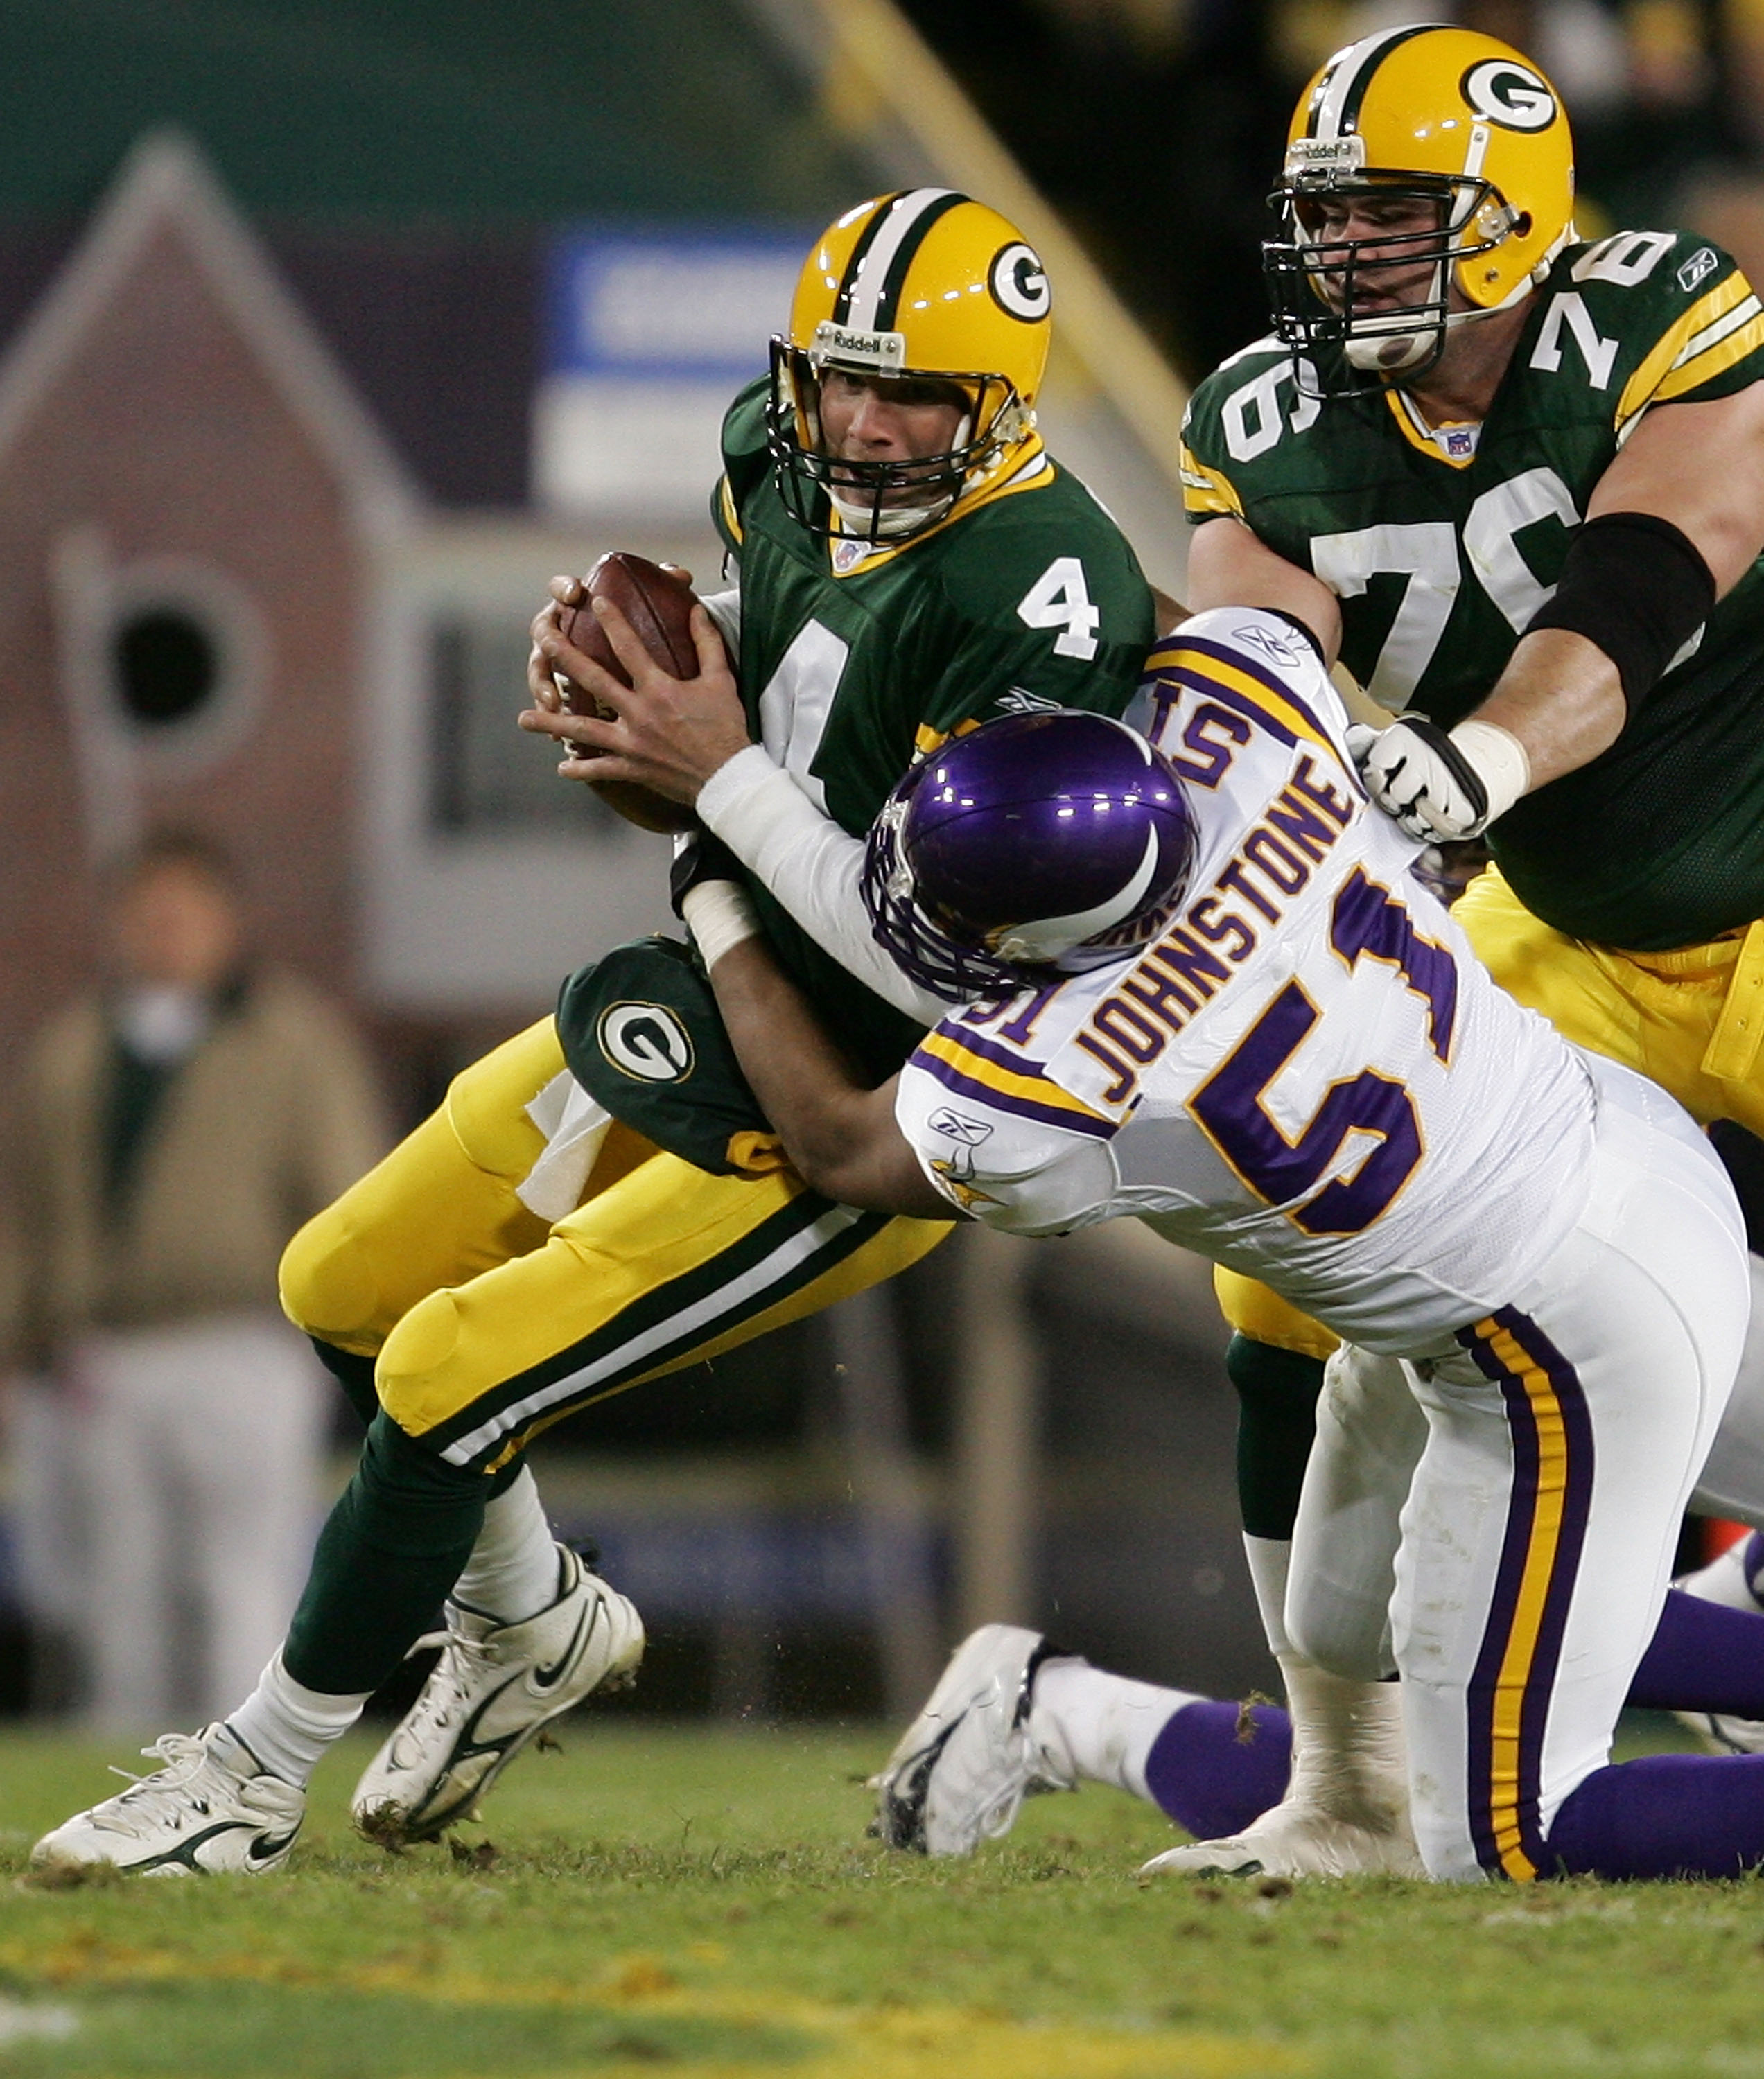 GREEN BAY, WI - NOVEMBER 21:  Quarterback Brett Favre #4 of the Green Bay Packers is sacked by Lance Johnstone #51 of the Minnesota Vikings as Chad Clifton #76 tries to block in NHL action November 21, 2005 at Lambeau Field in Green Bay, Wisconsin.  (Phot